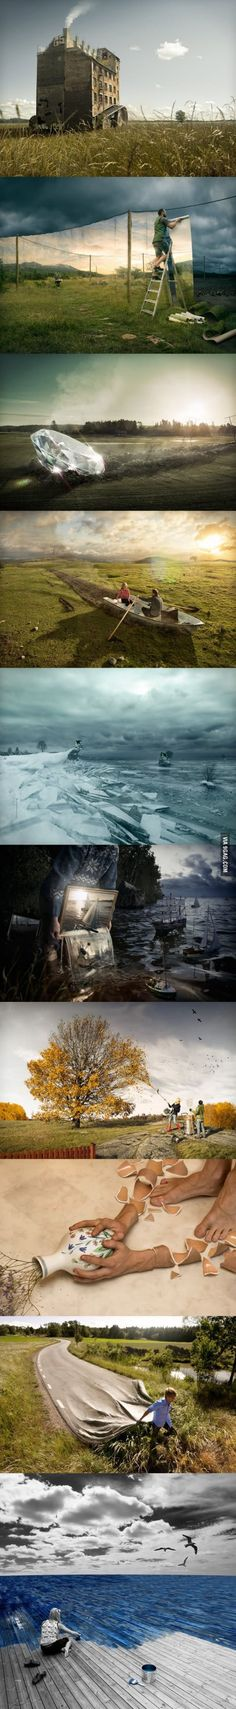 One of my favorite photo retouch artists ever - Erik Johansson